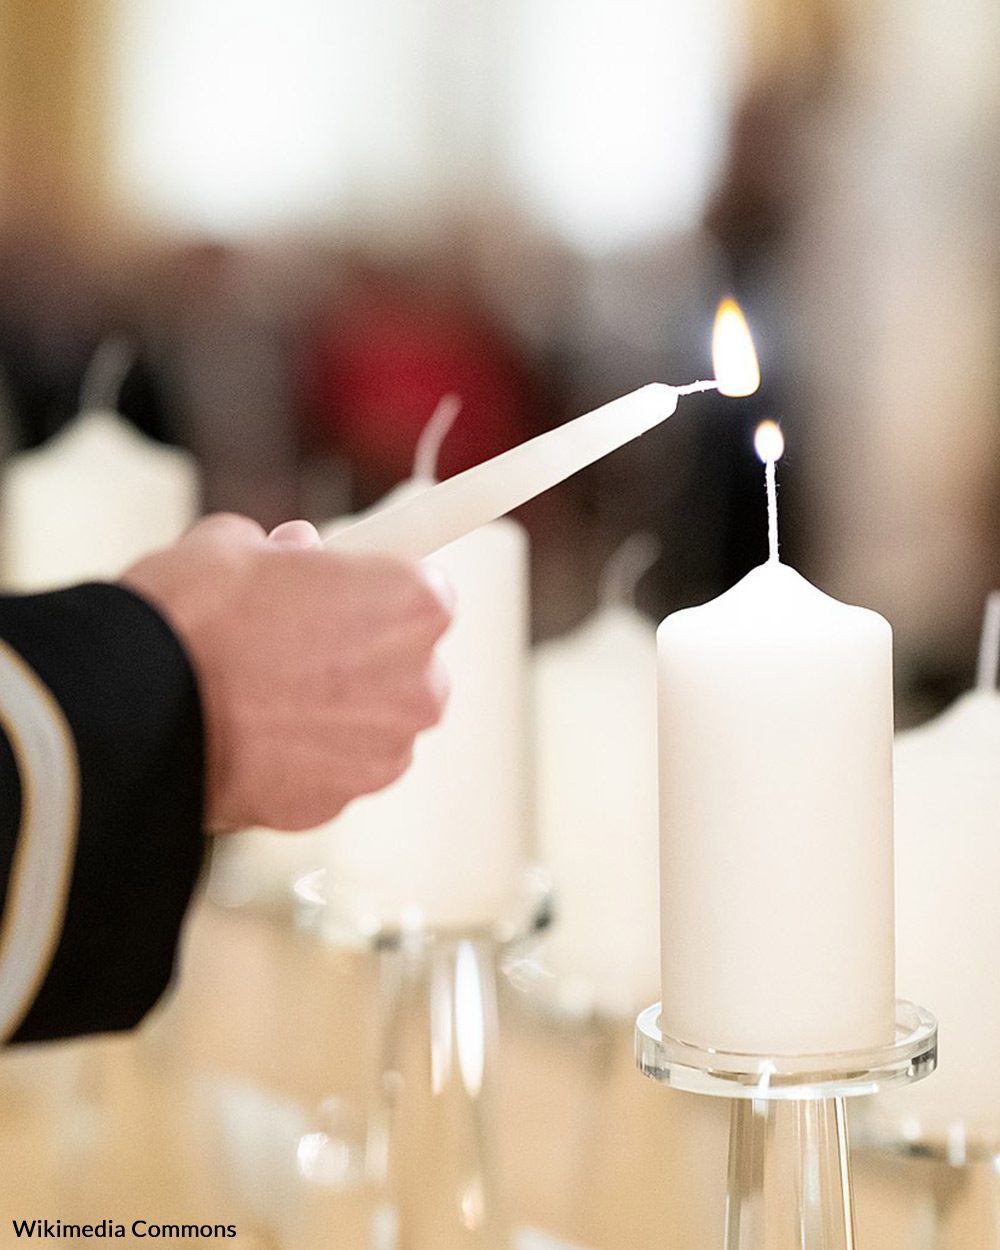 Gold Star families have lost a loved one in active military service.